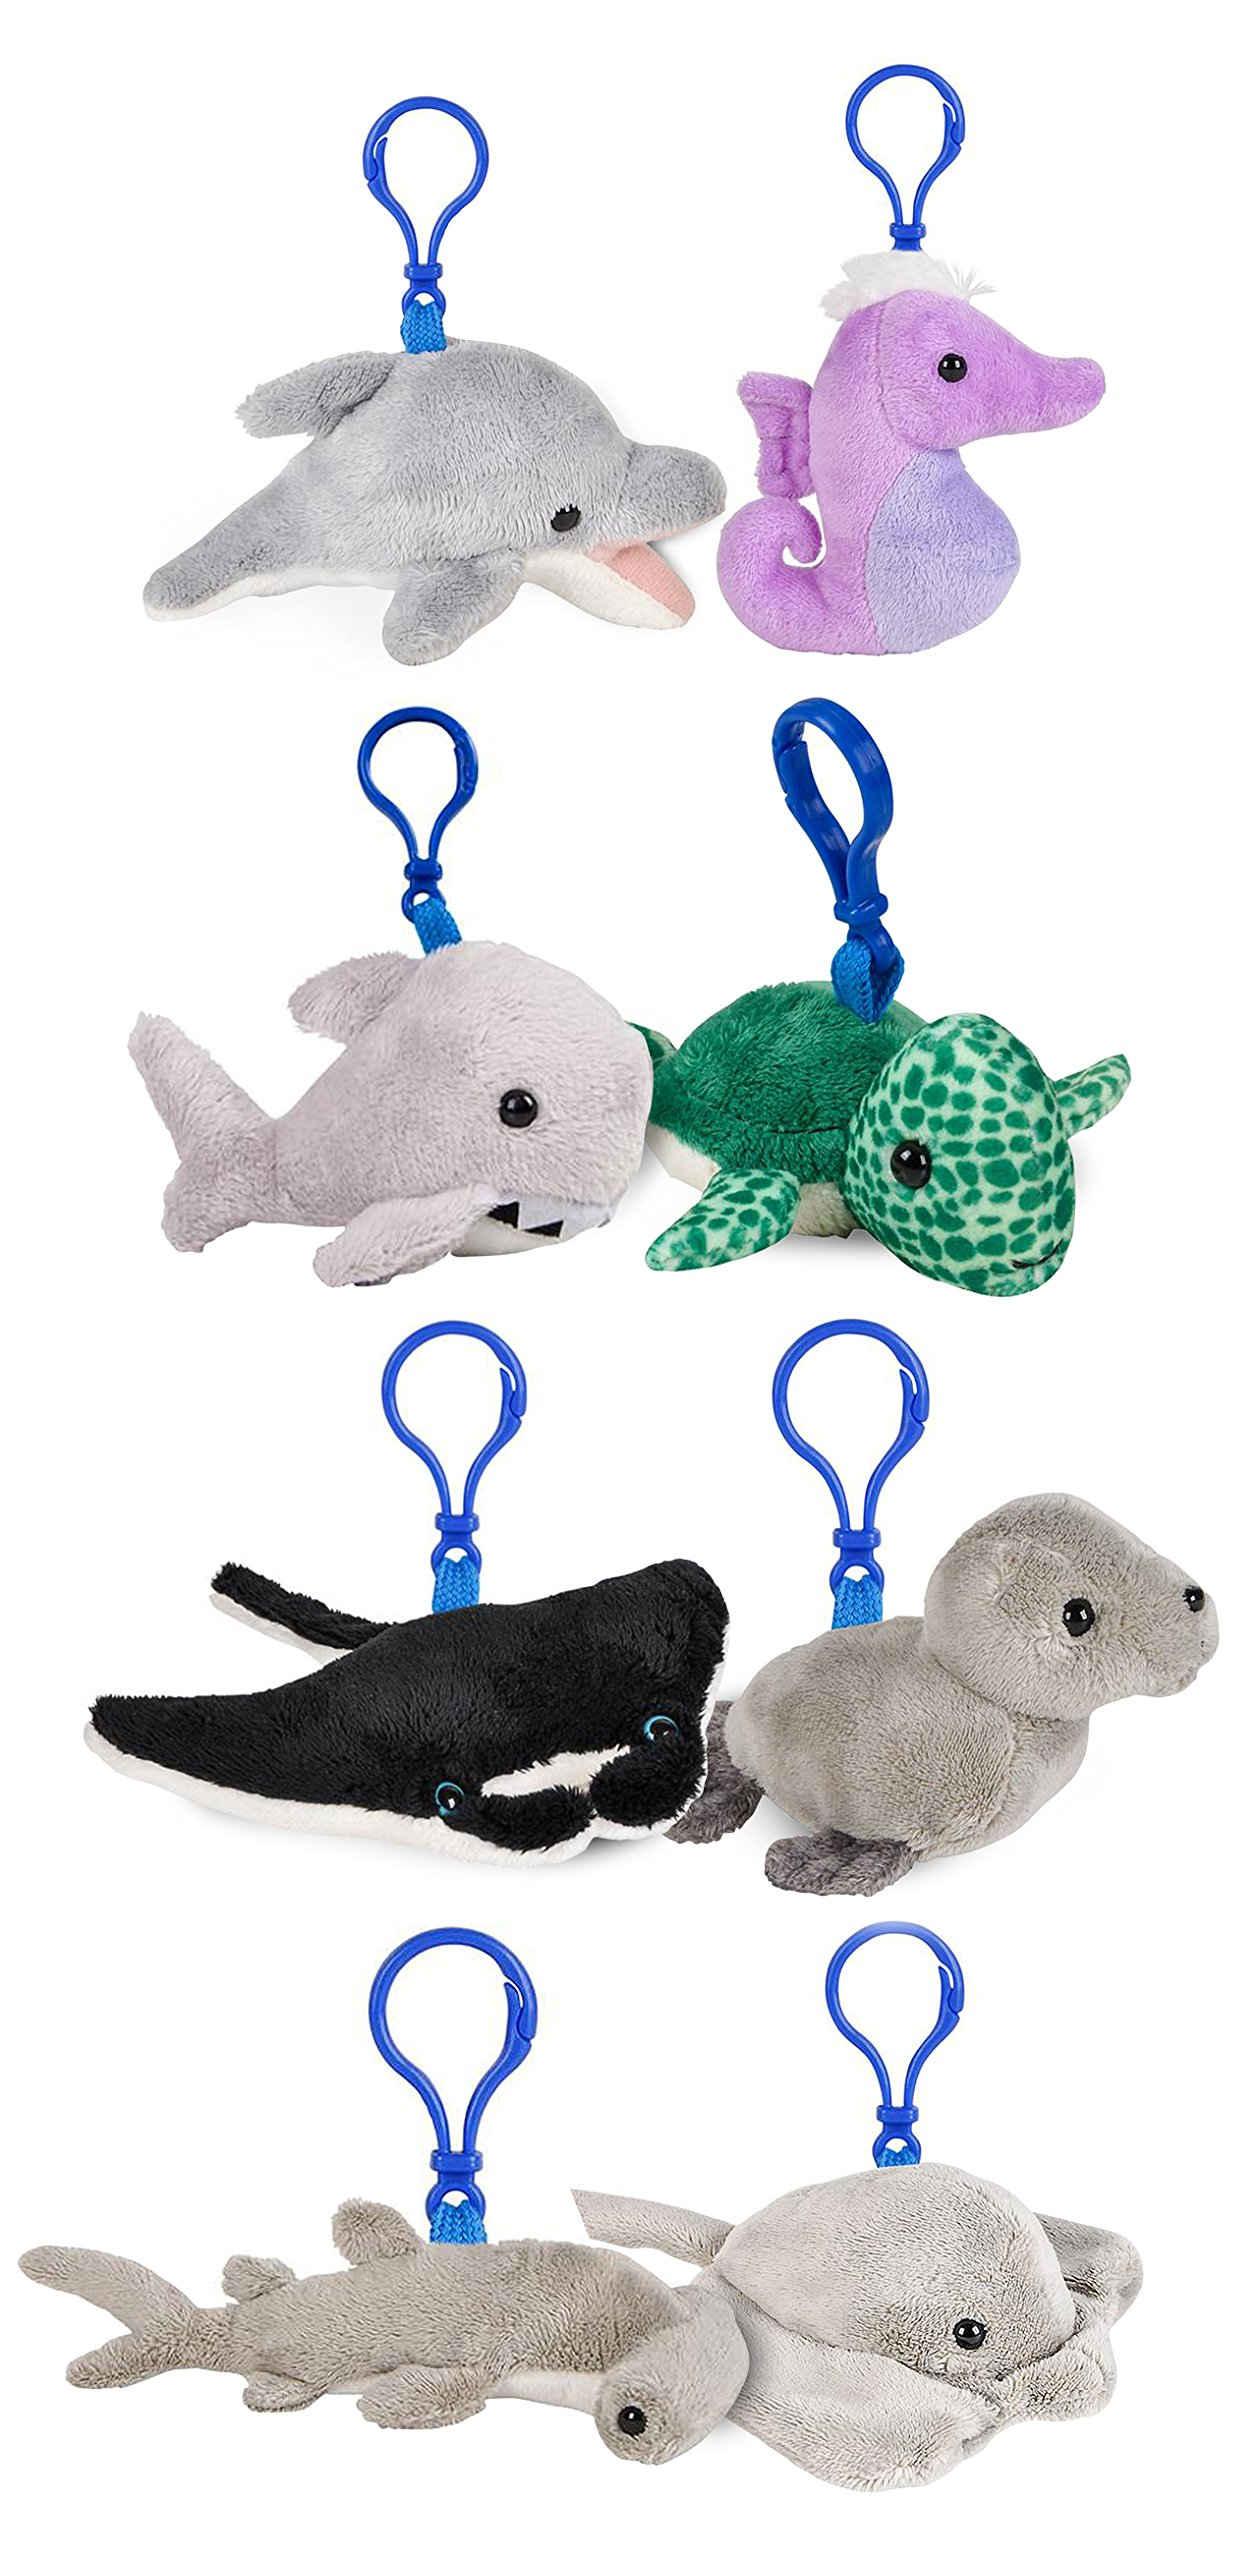 Wildlife Tree 3.5'' Mini Small Stuffed Animals Keychain Backpack Clip Bundle Ocean Animal Toys or Under The Sea Party Favors for Kids by Wildlife Tree